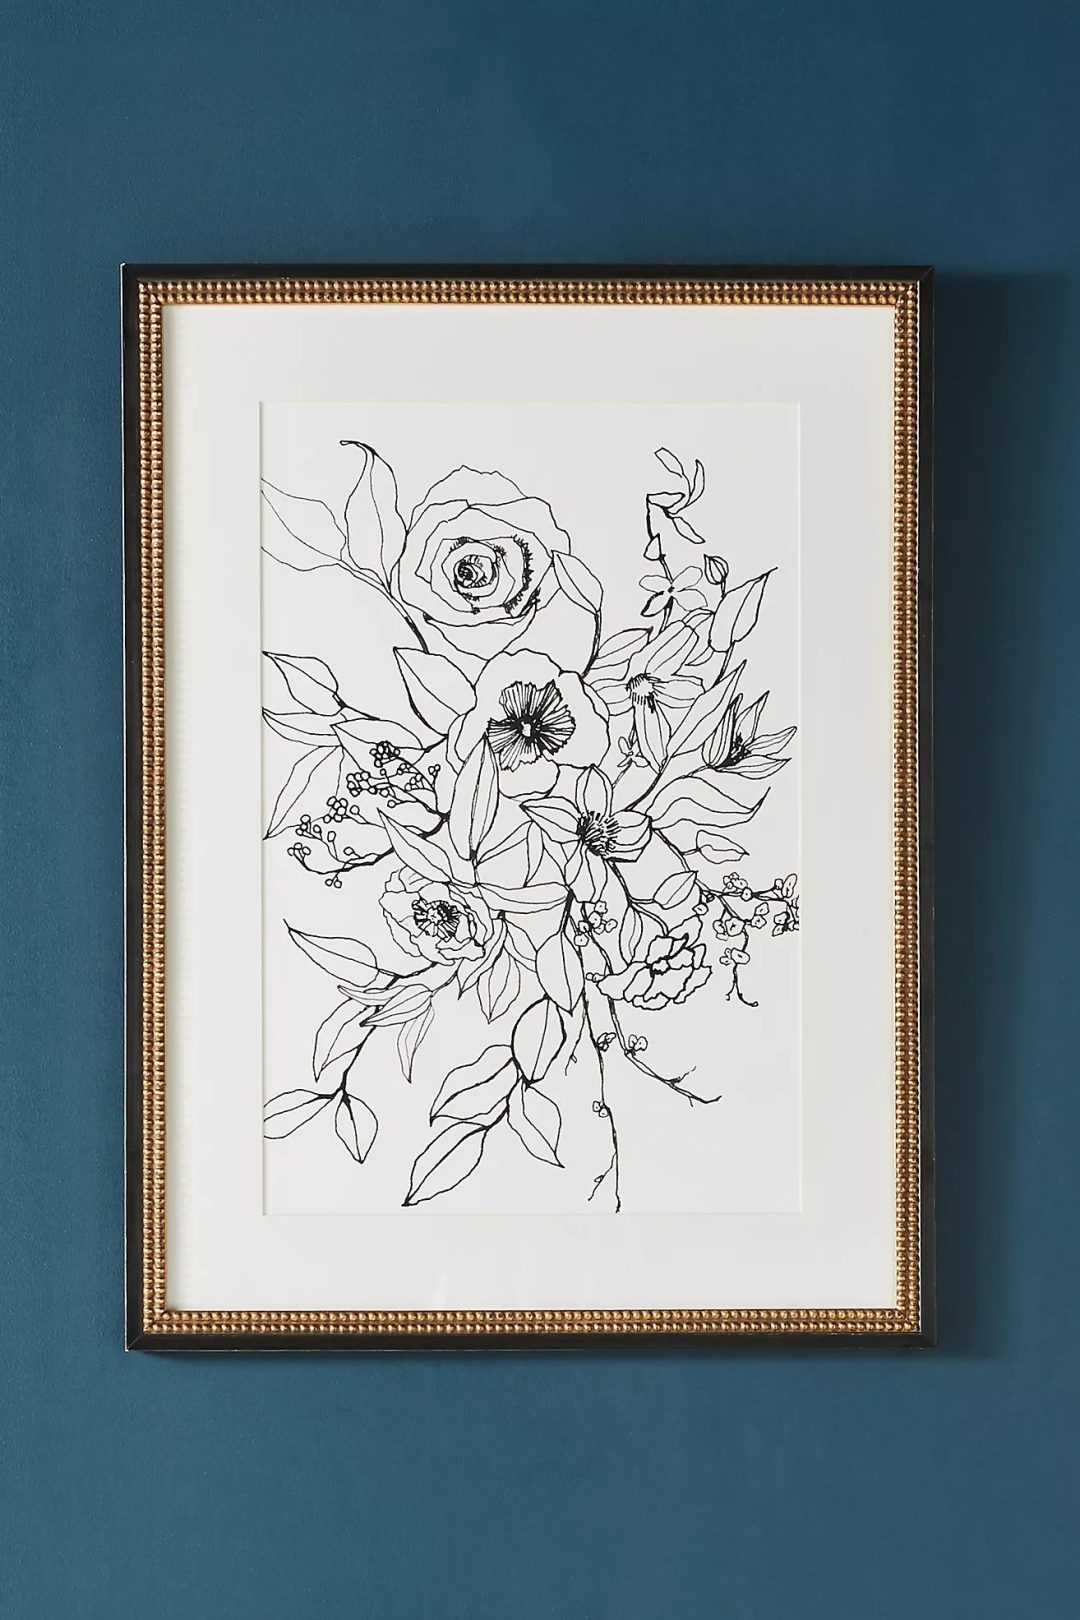 Abstract modern flower wall decor with lines in black and white